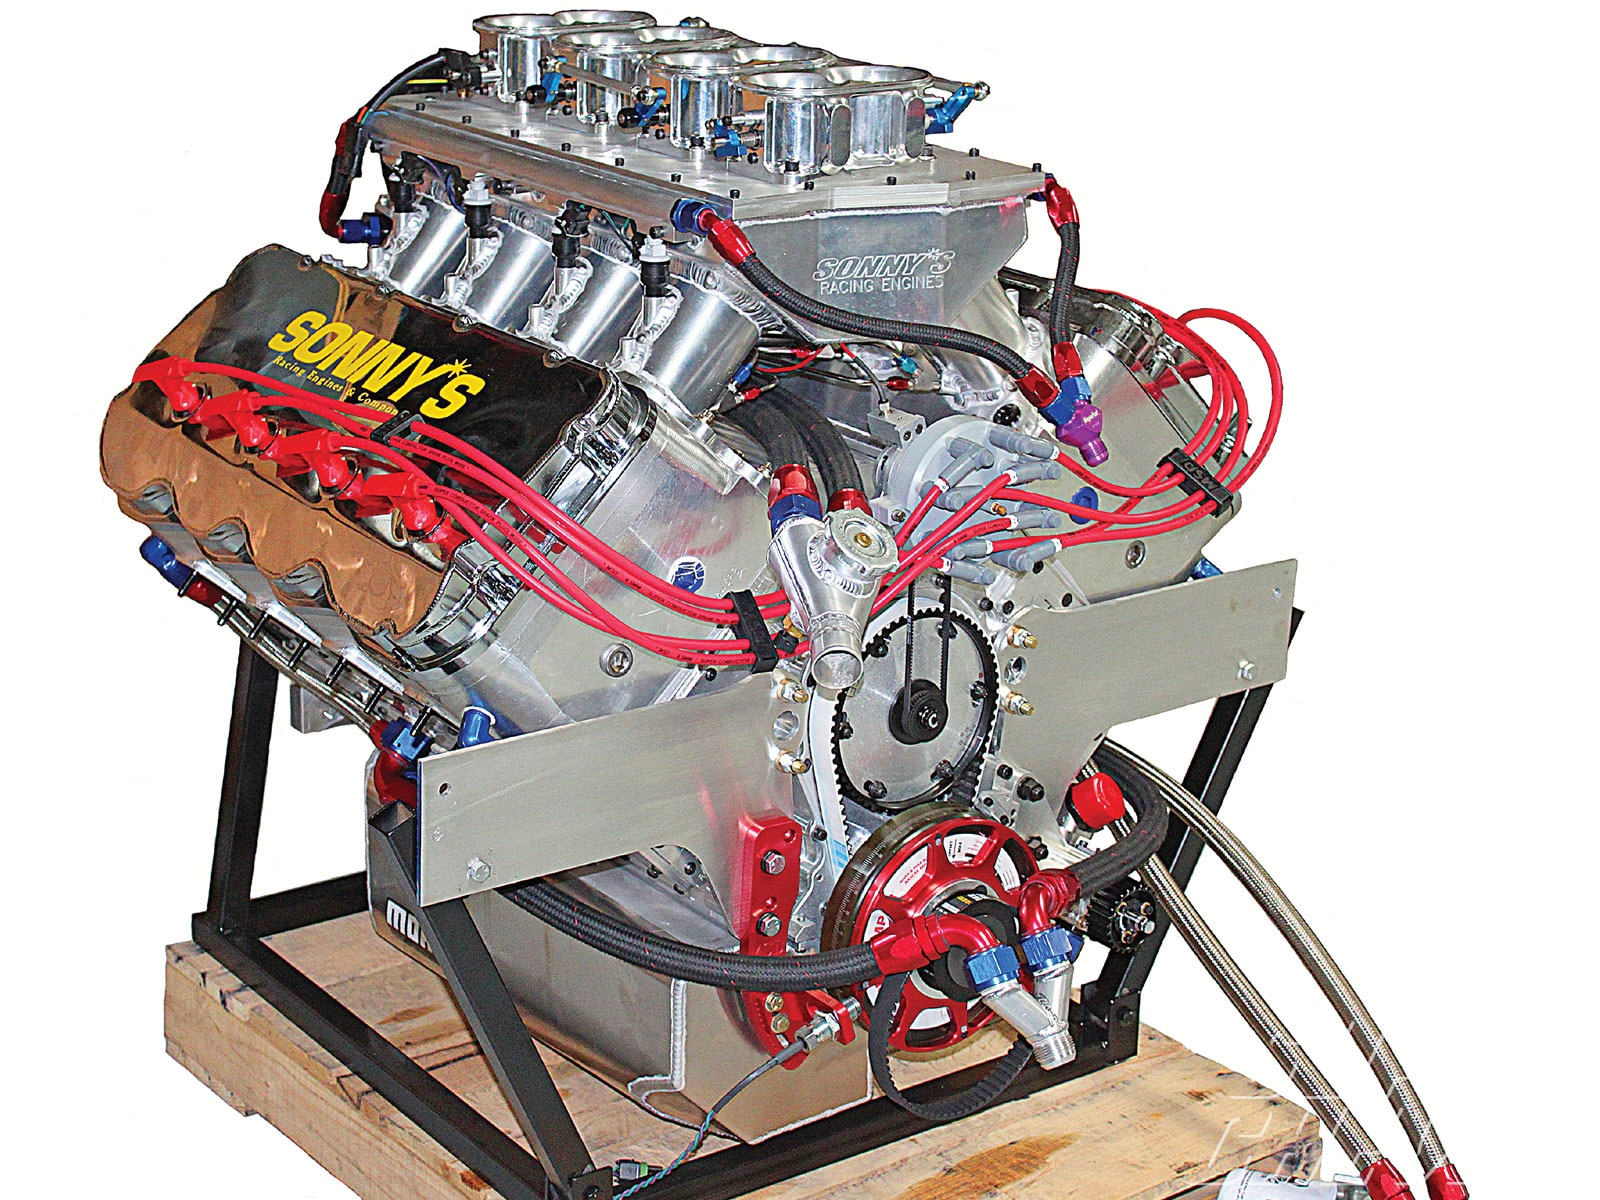 Sucp_1101_18 SAR_940_racing_engine Pump_gas_monster_motor